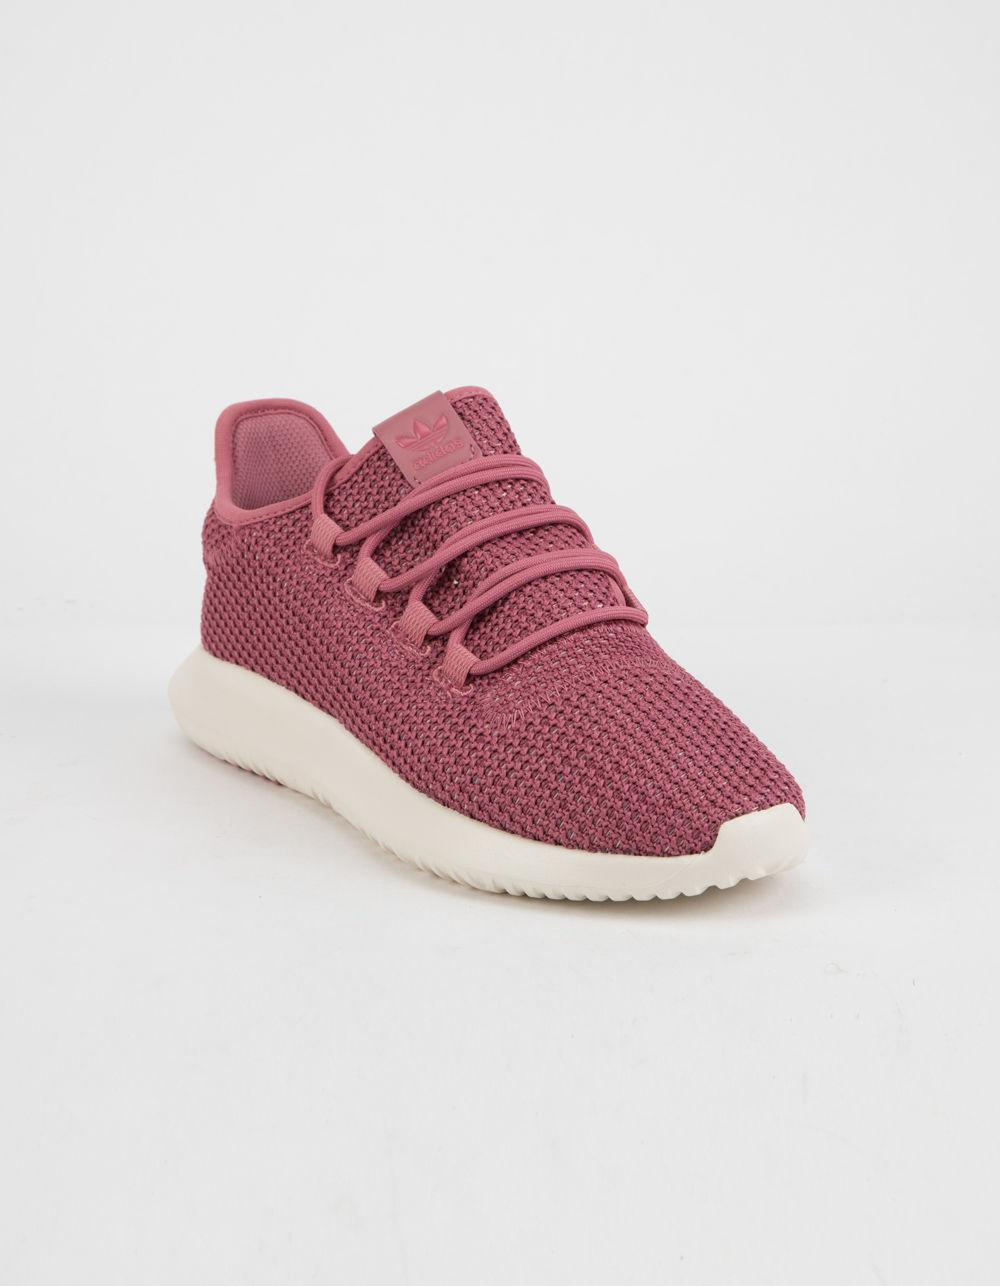 brand new 35c51 96354 adidas Tubular Shadow CK W Trace Maroon White   Schuhdealer